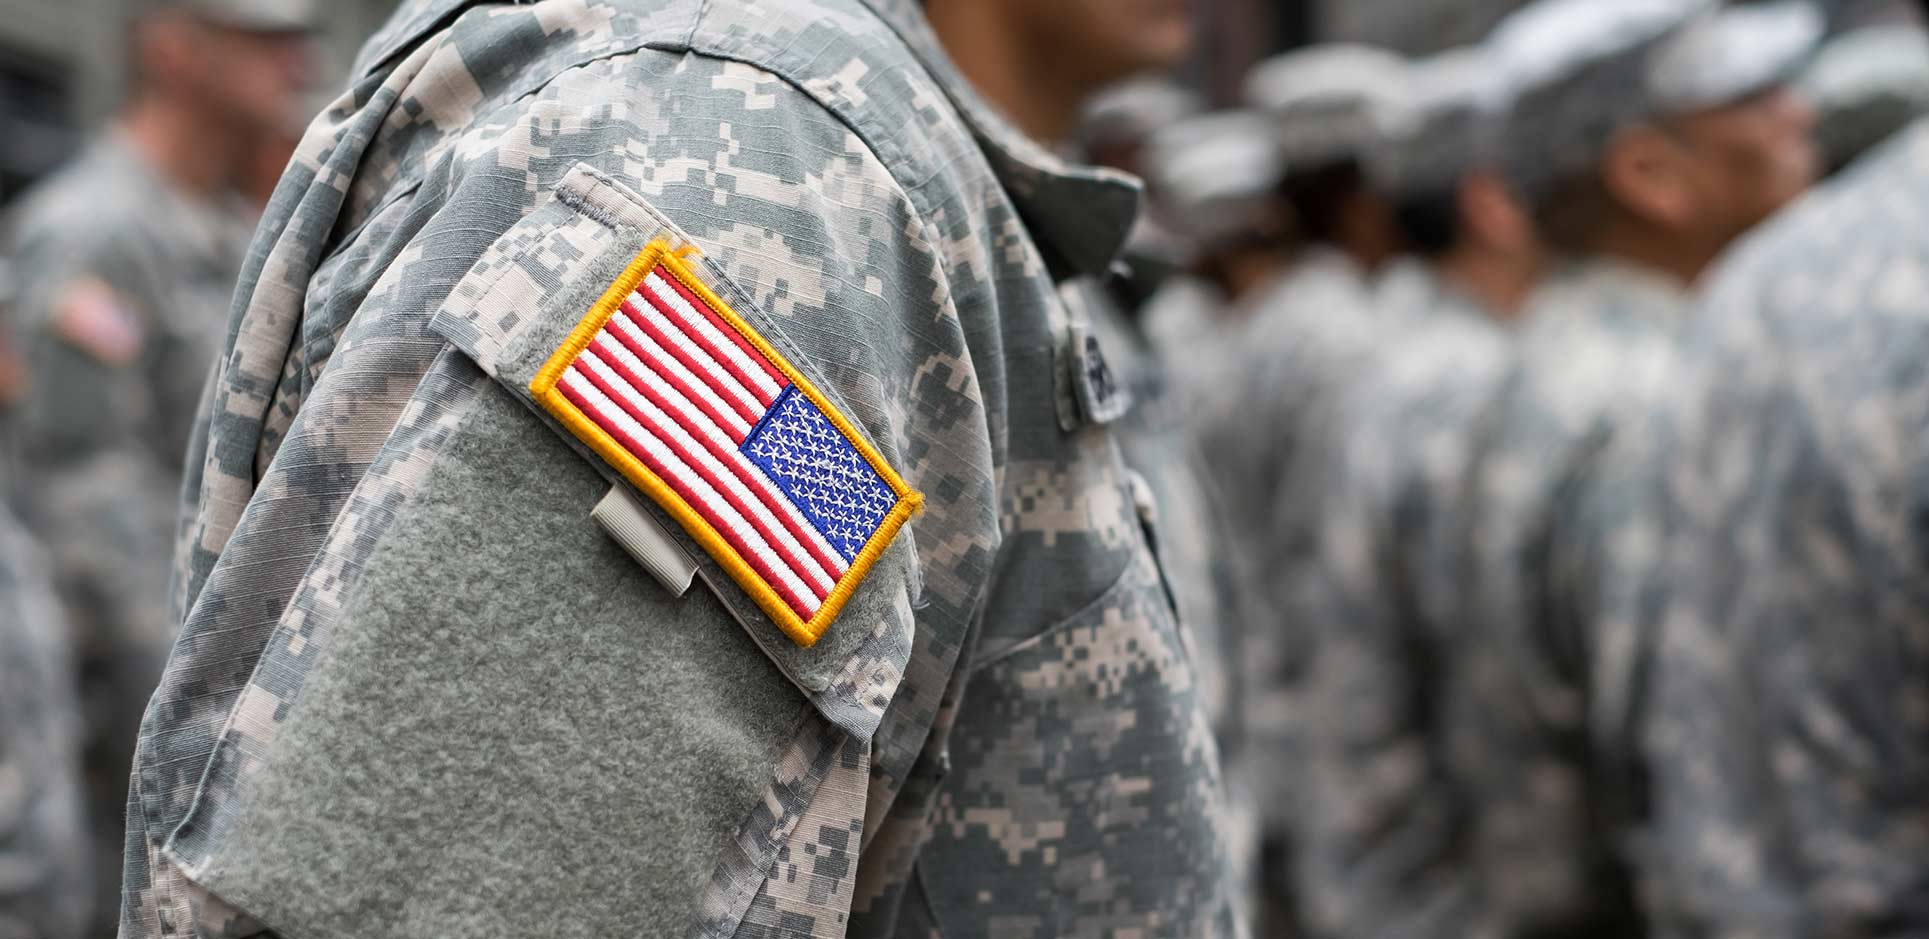 Flag patch on a military sleeve, blurred formation in background